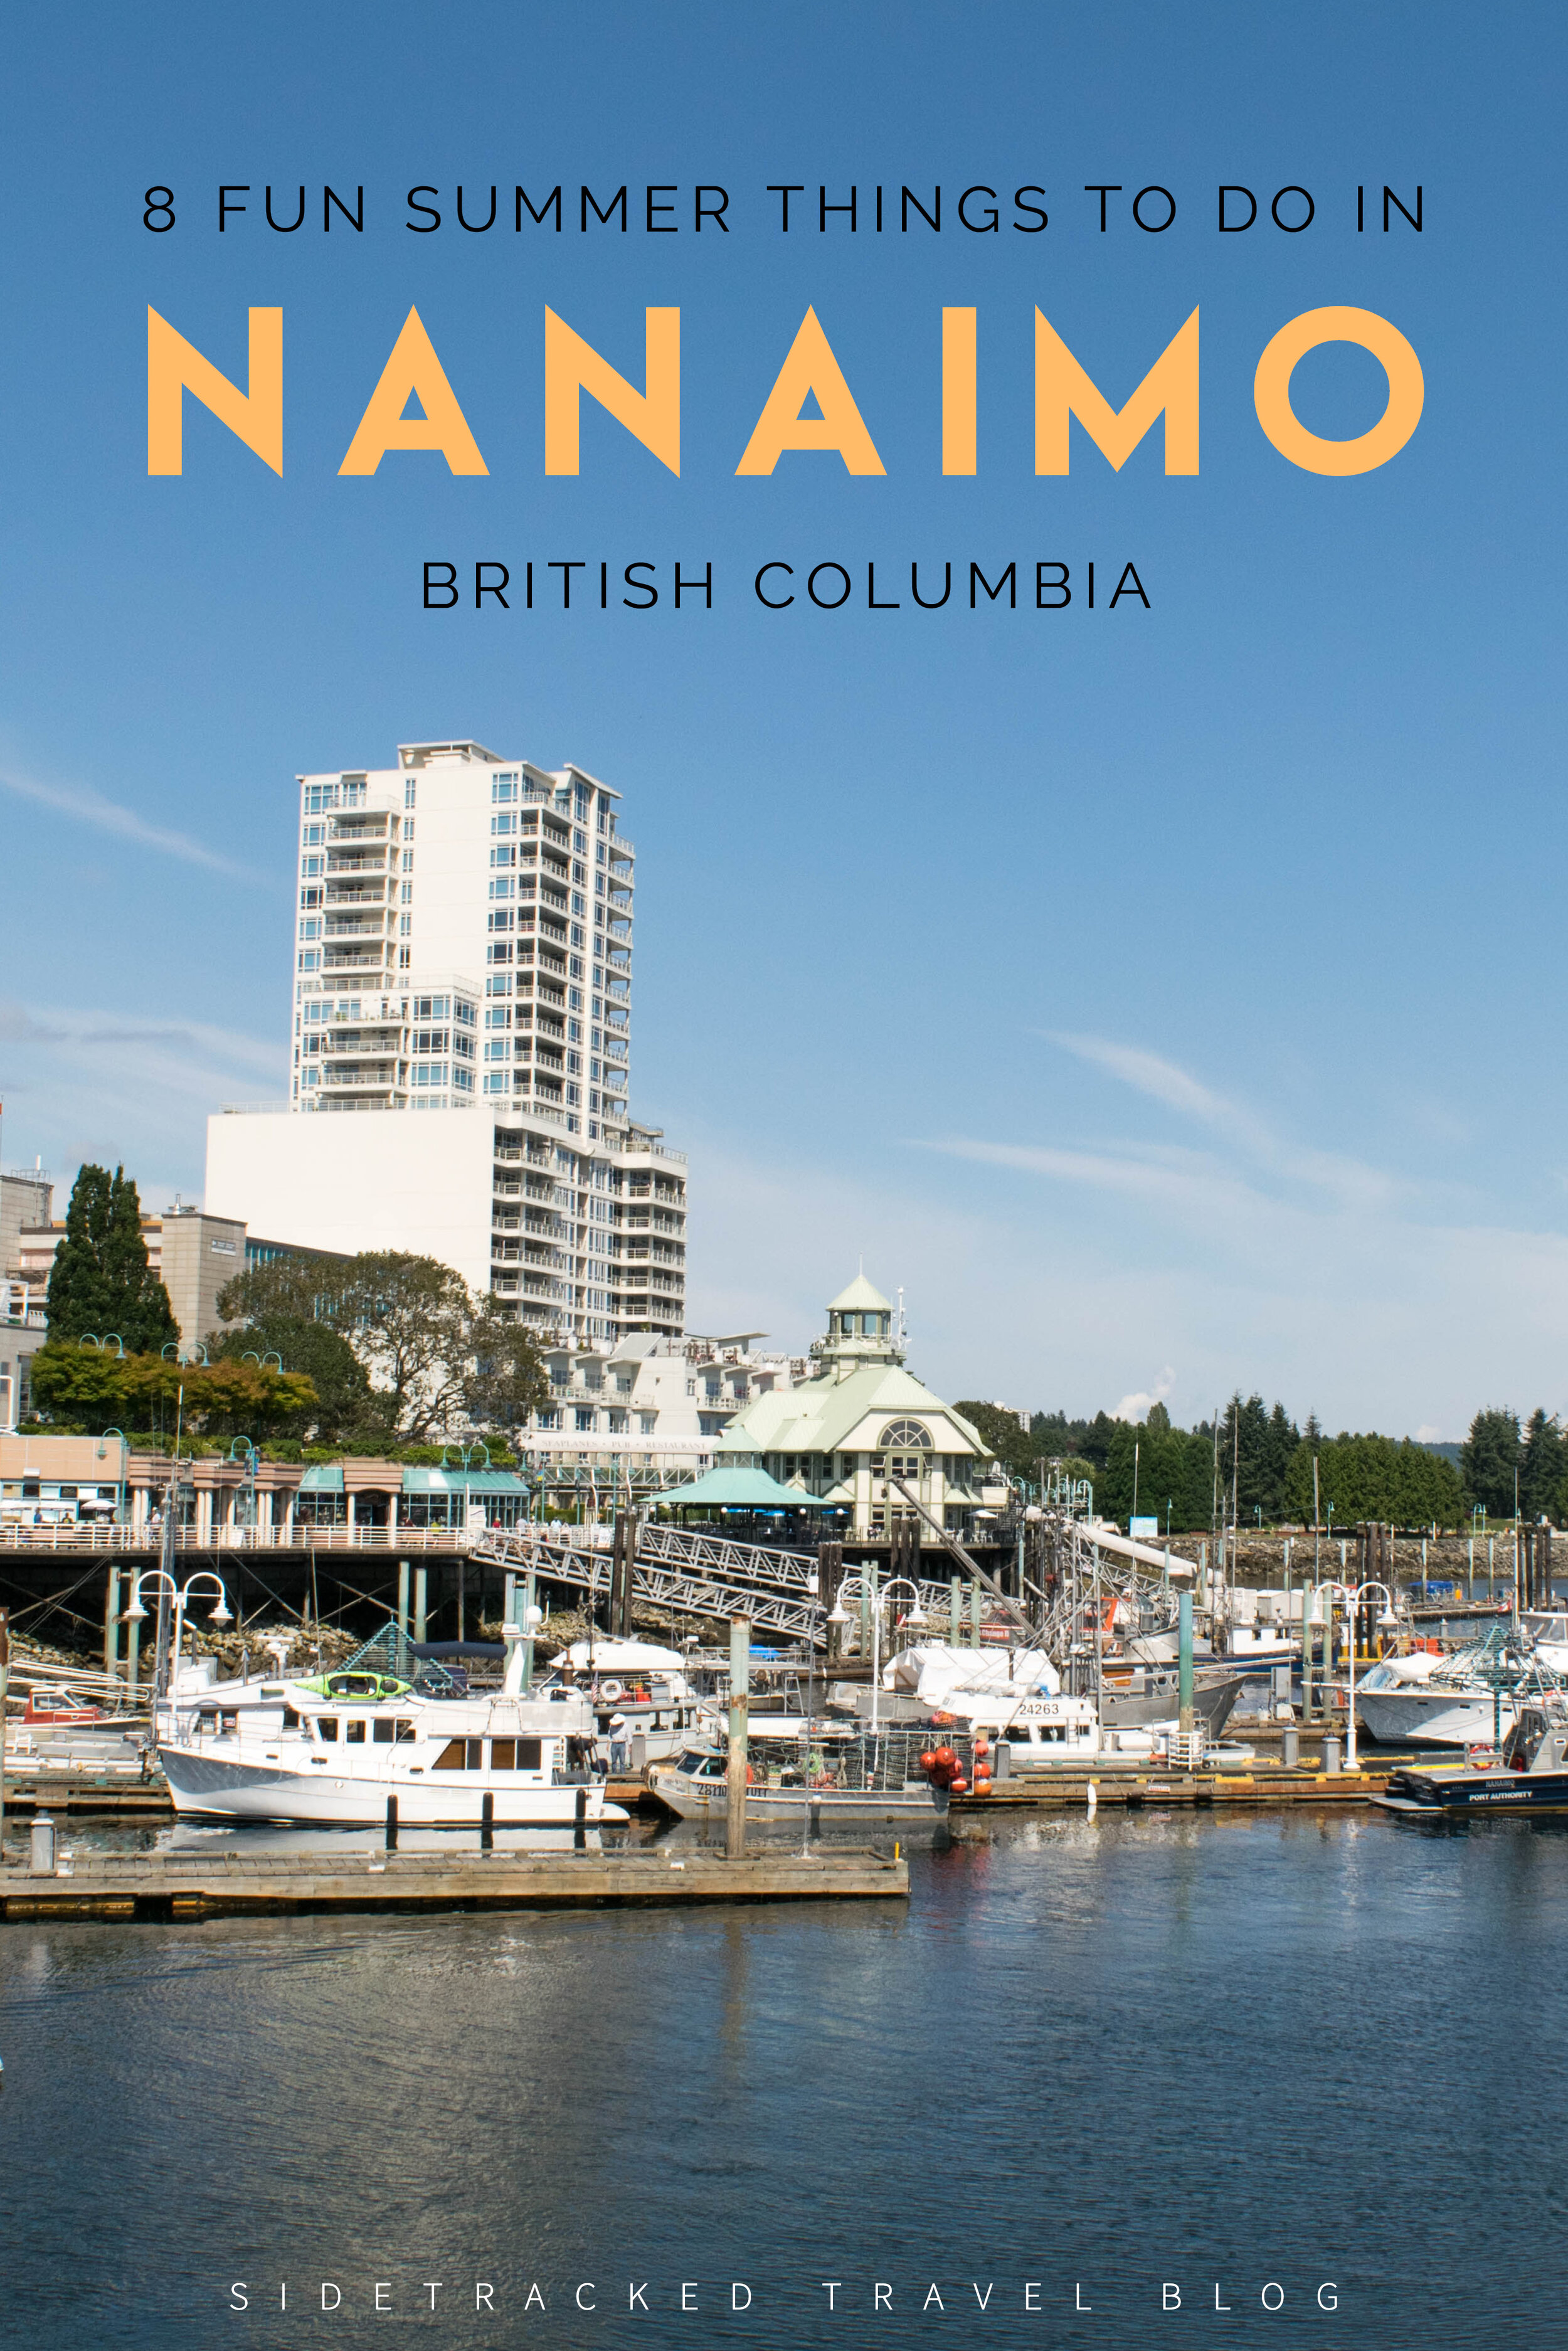 Autumn is almost upon us here on the west coast, but I wanted to get one last summer-themed British Columbia post in before we can say that it's officially fall. In this article, I'm highlighting eight different things that you can do should you choose to visit Nanaimo in the summer months!